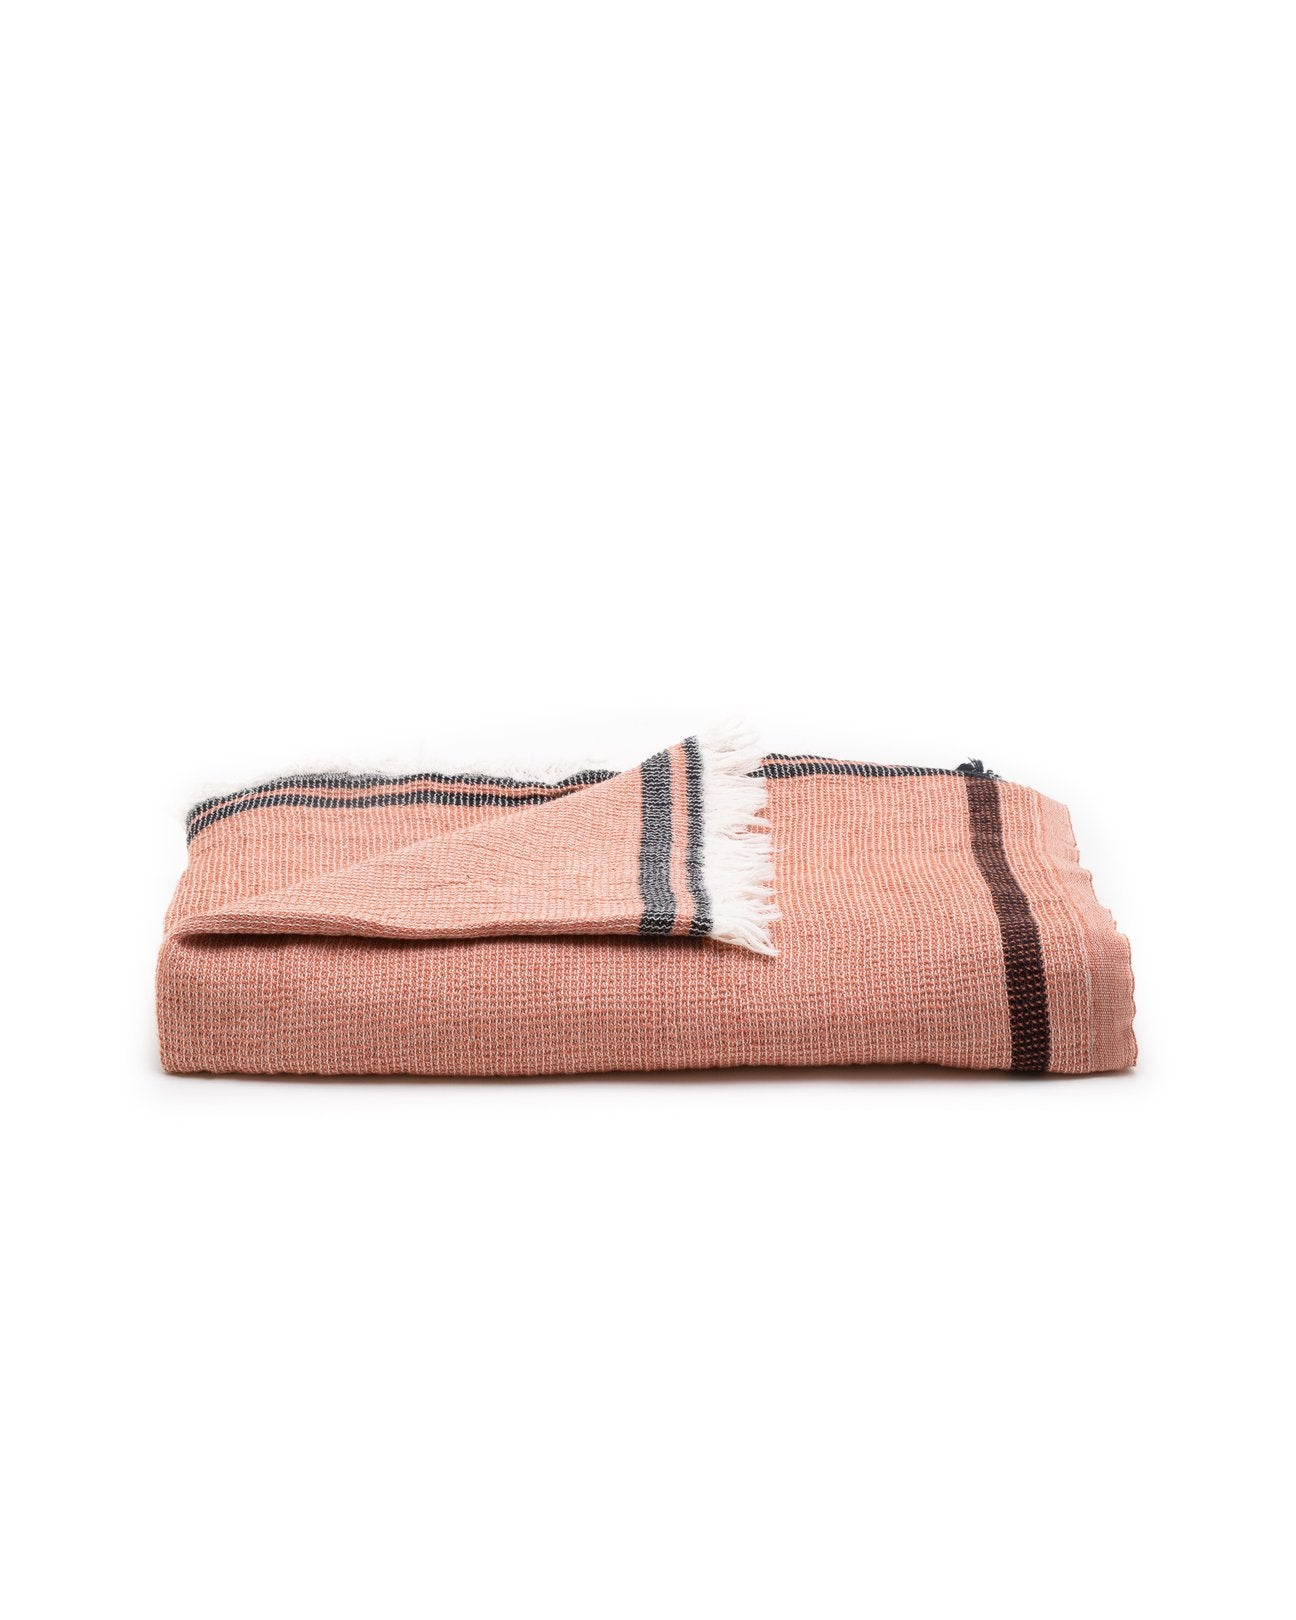 Naz Throw in Cinnamon Stone